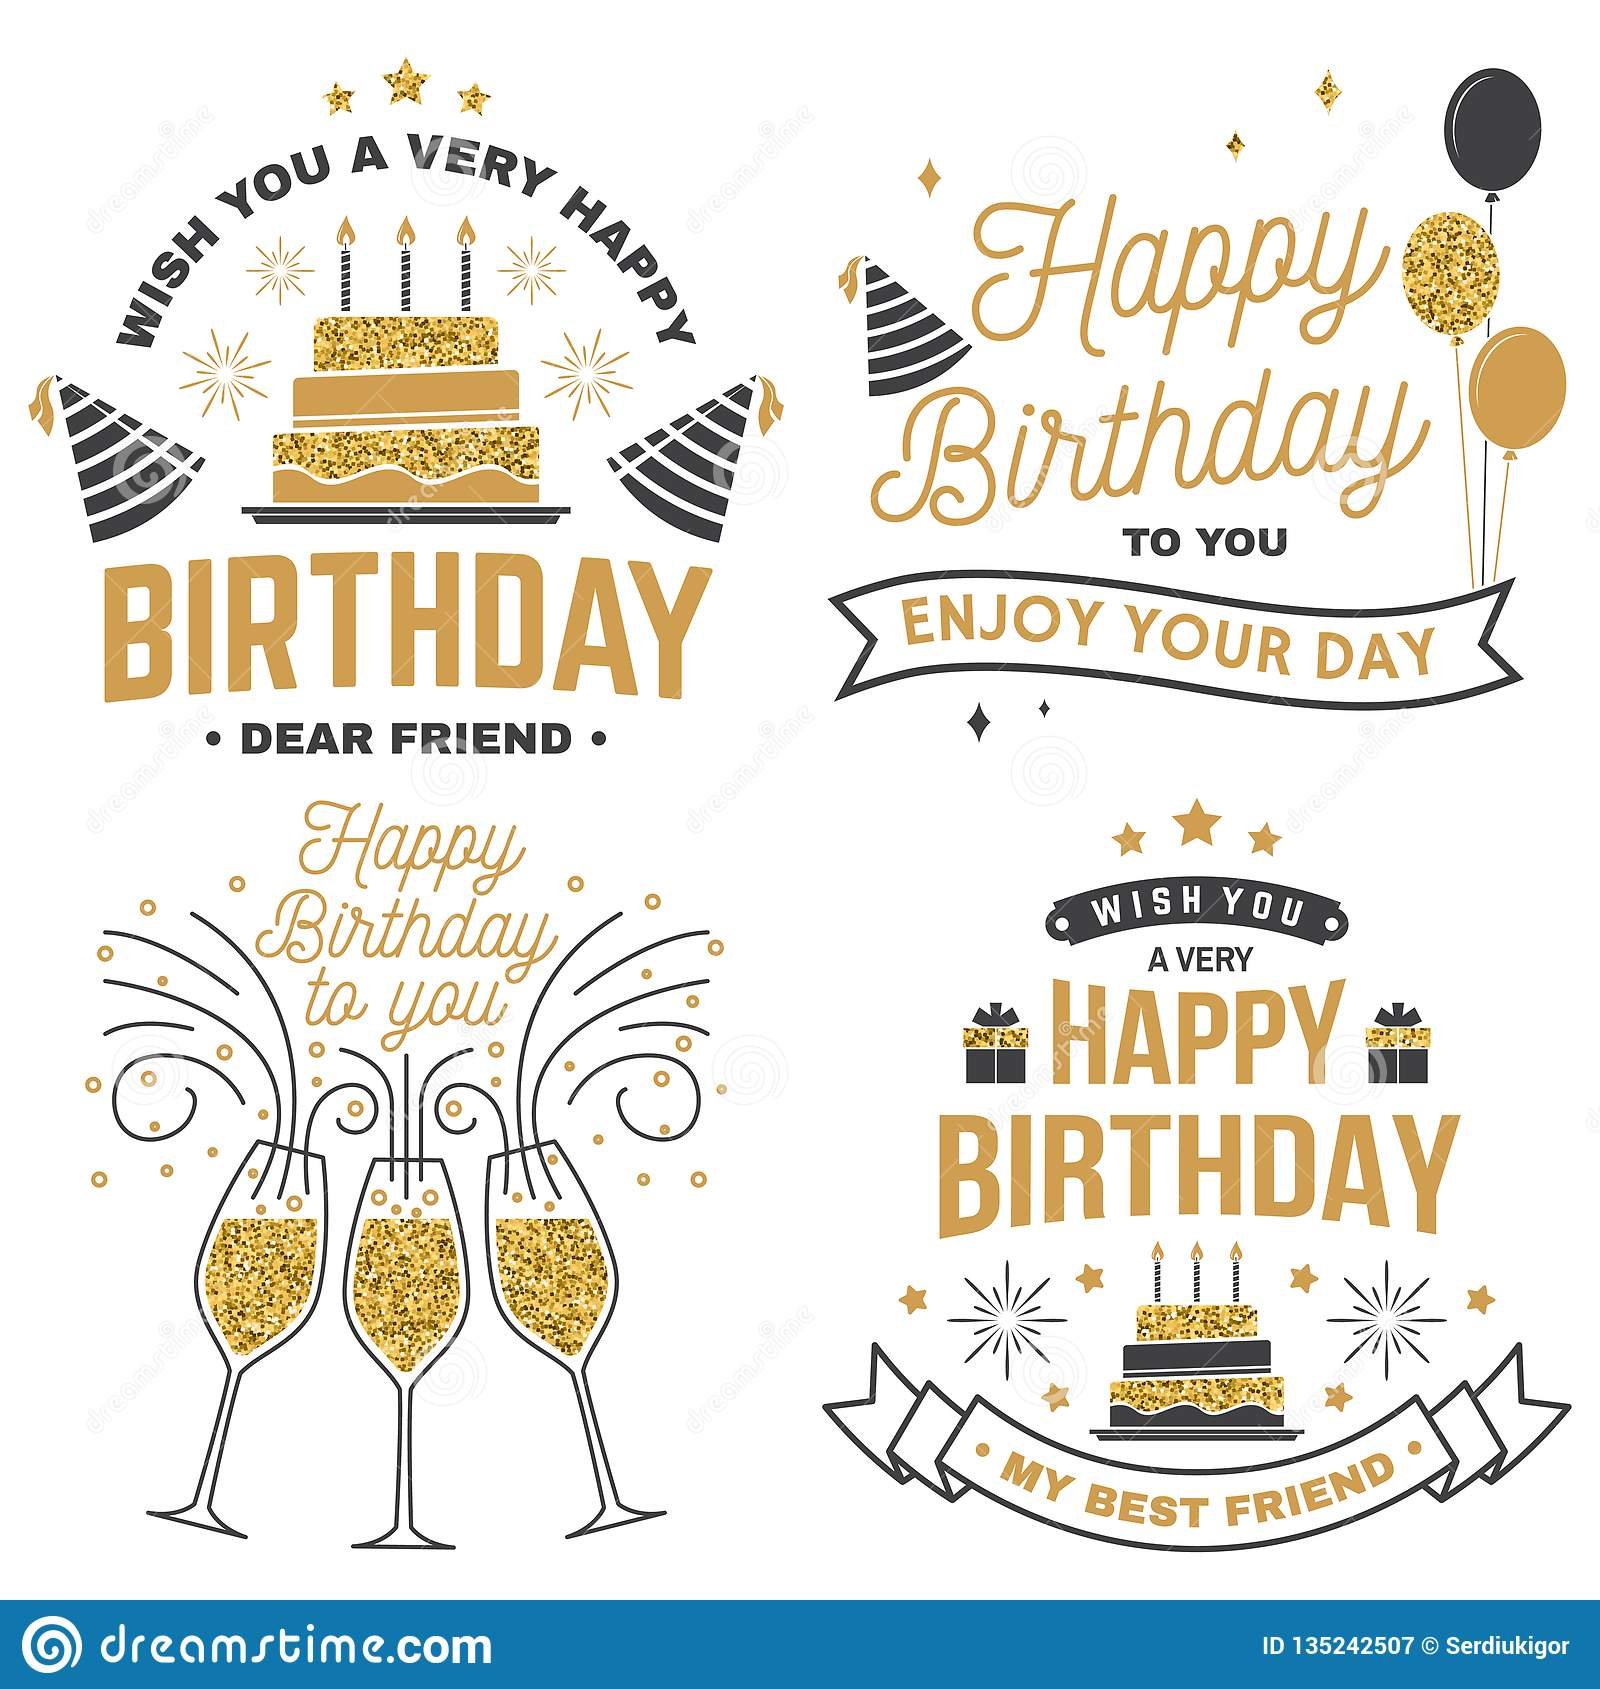 Wish You A Very Happy Birthday Dear Friend Badge Sticker Card With Hat Firework And Cake Candles Vector Set Of Vintage Typographic